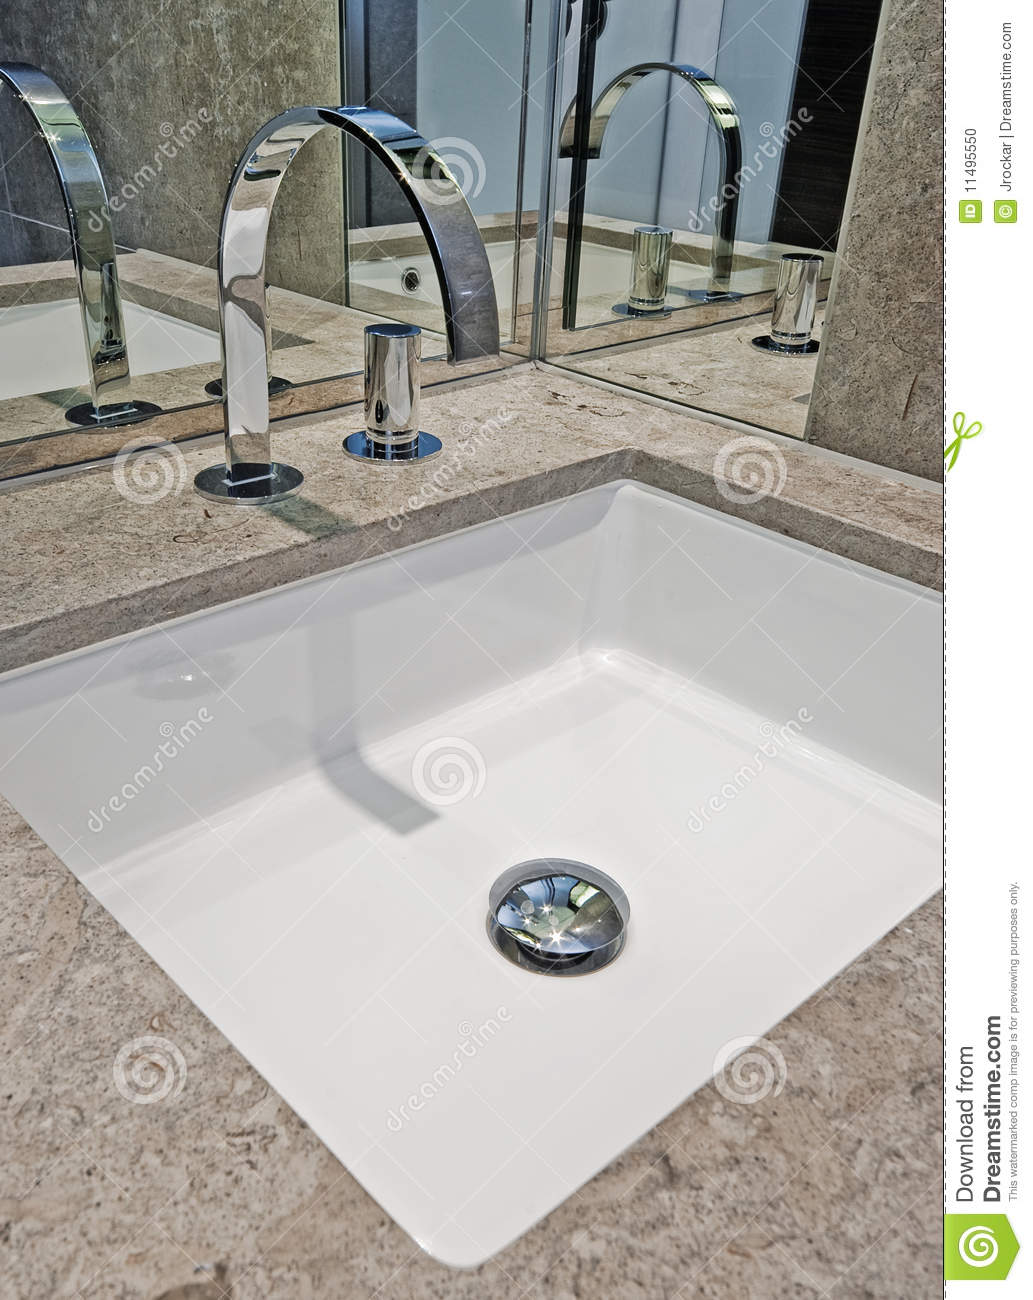 Marble Basin Marble Hand Wash Basin Stock Photo Image Of Interior 11495550